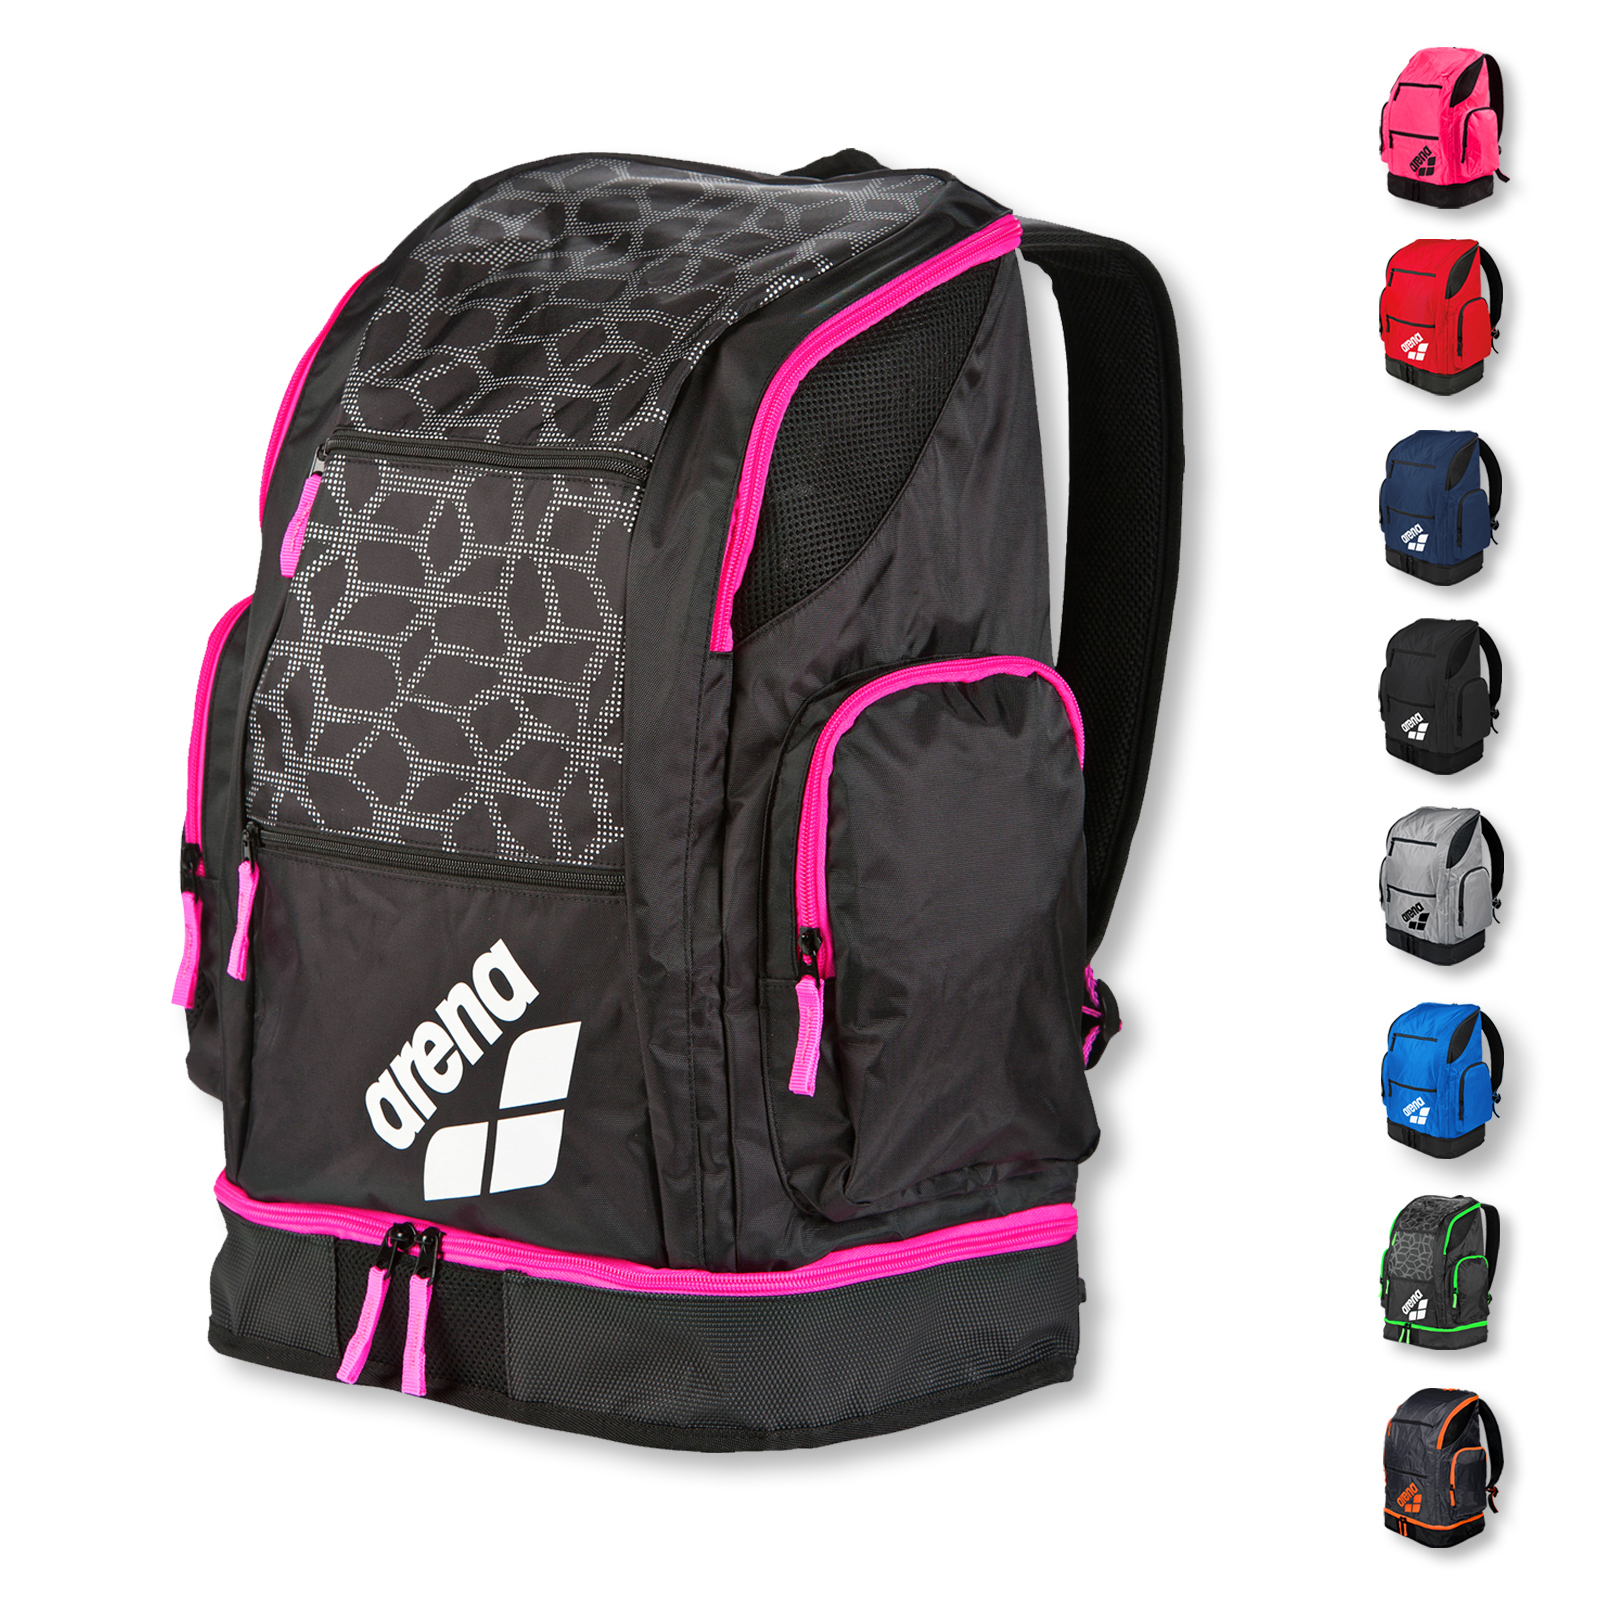 Arena Spiky 2 large Backpack Rucksack 1E004 in red team